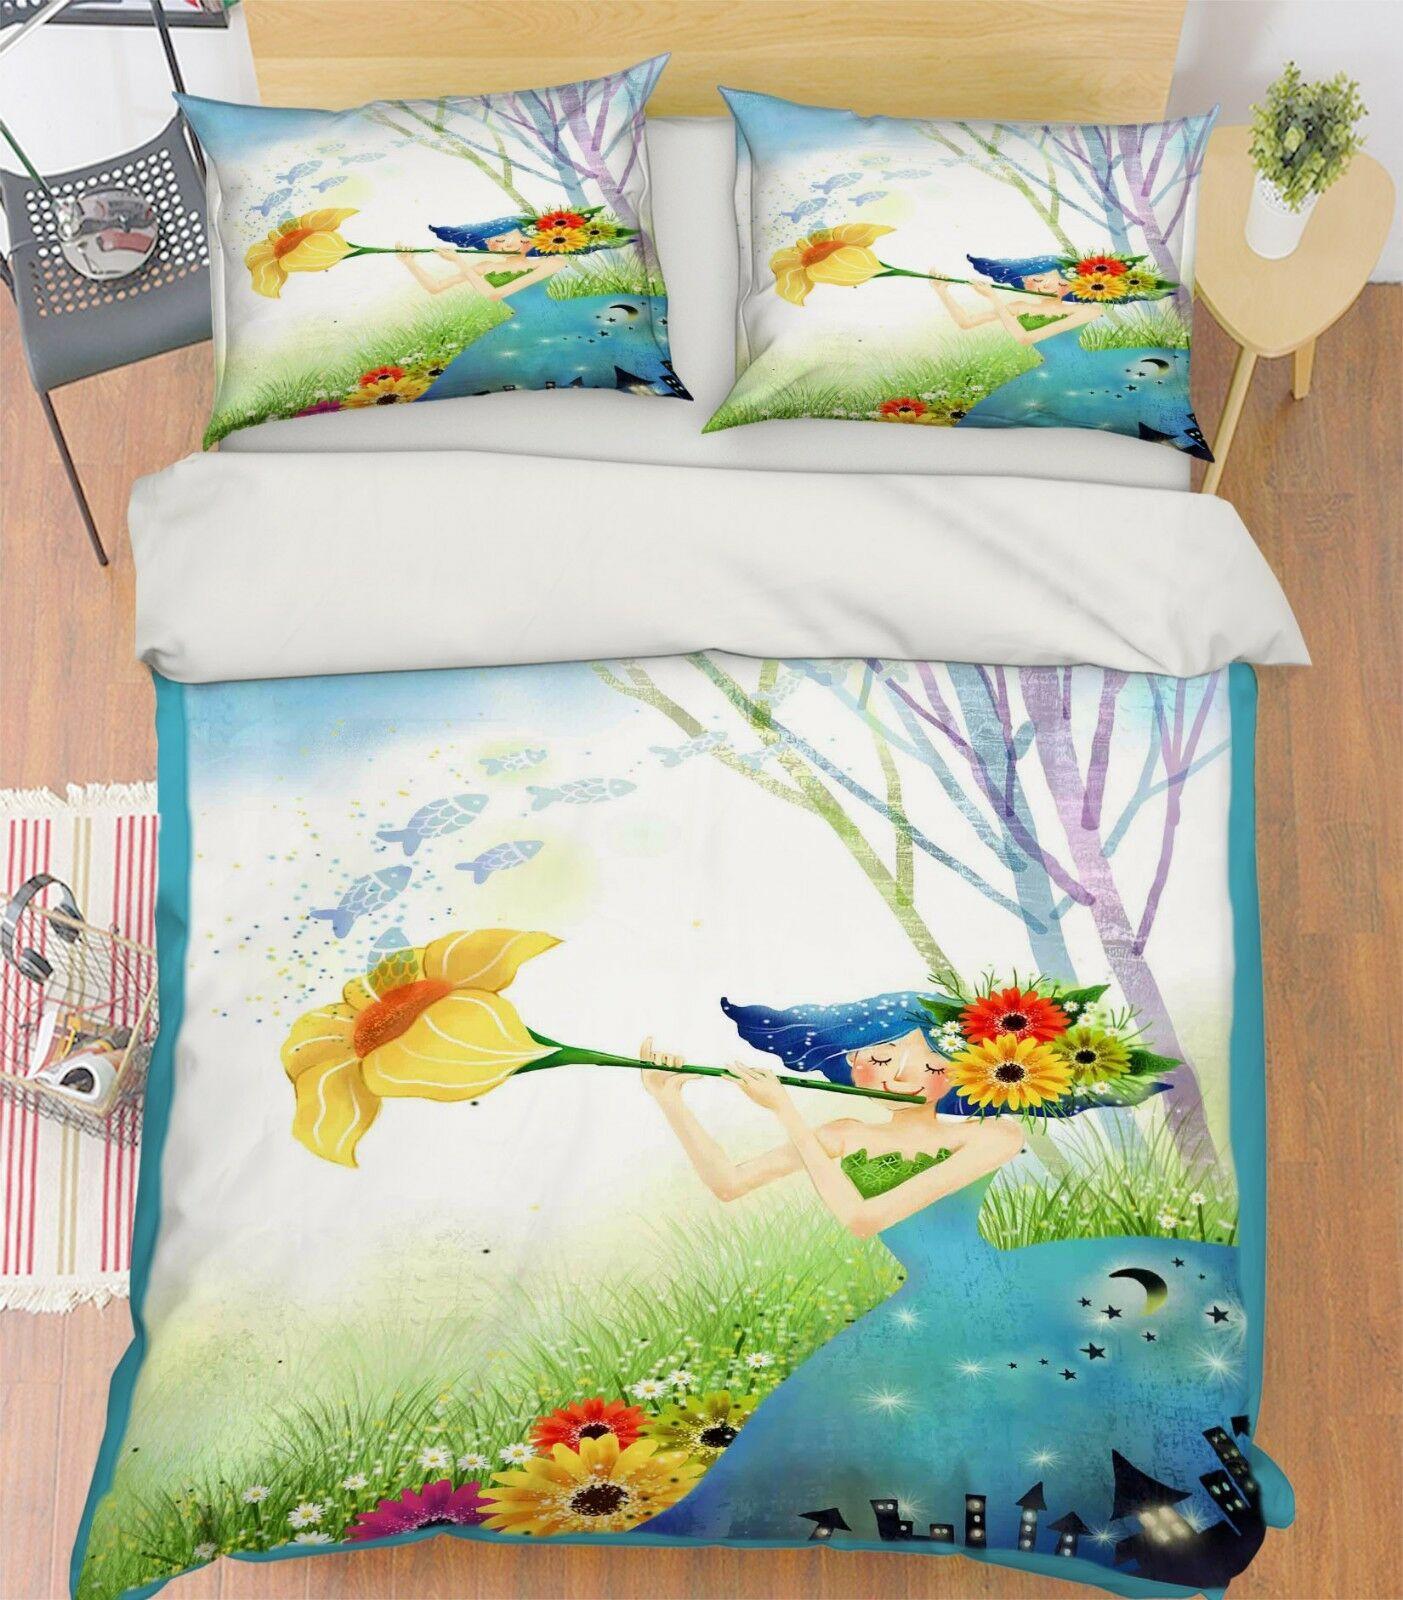 3D Fairy Tale Girl 89 Bed Pillowcases Quilt Duvet Cover Set Single Queen King CA